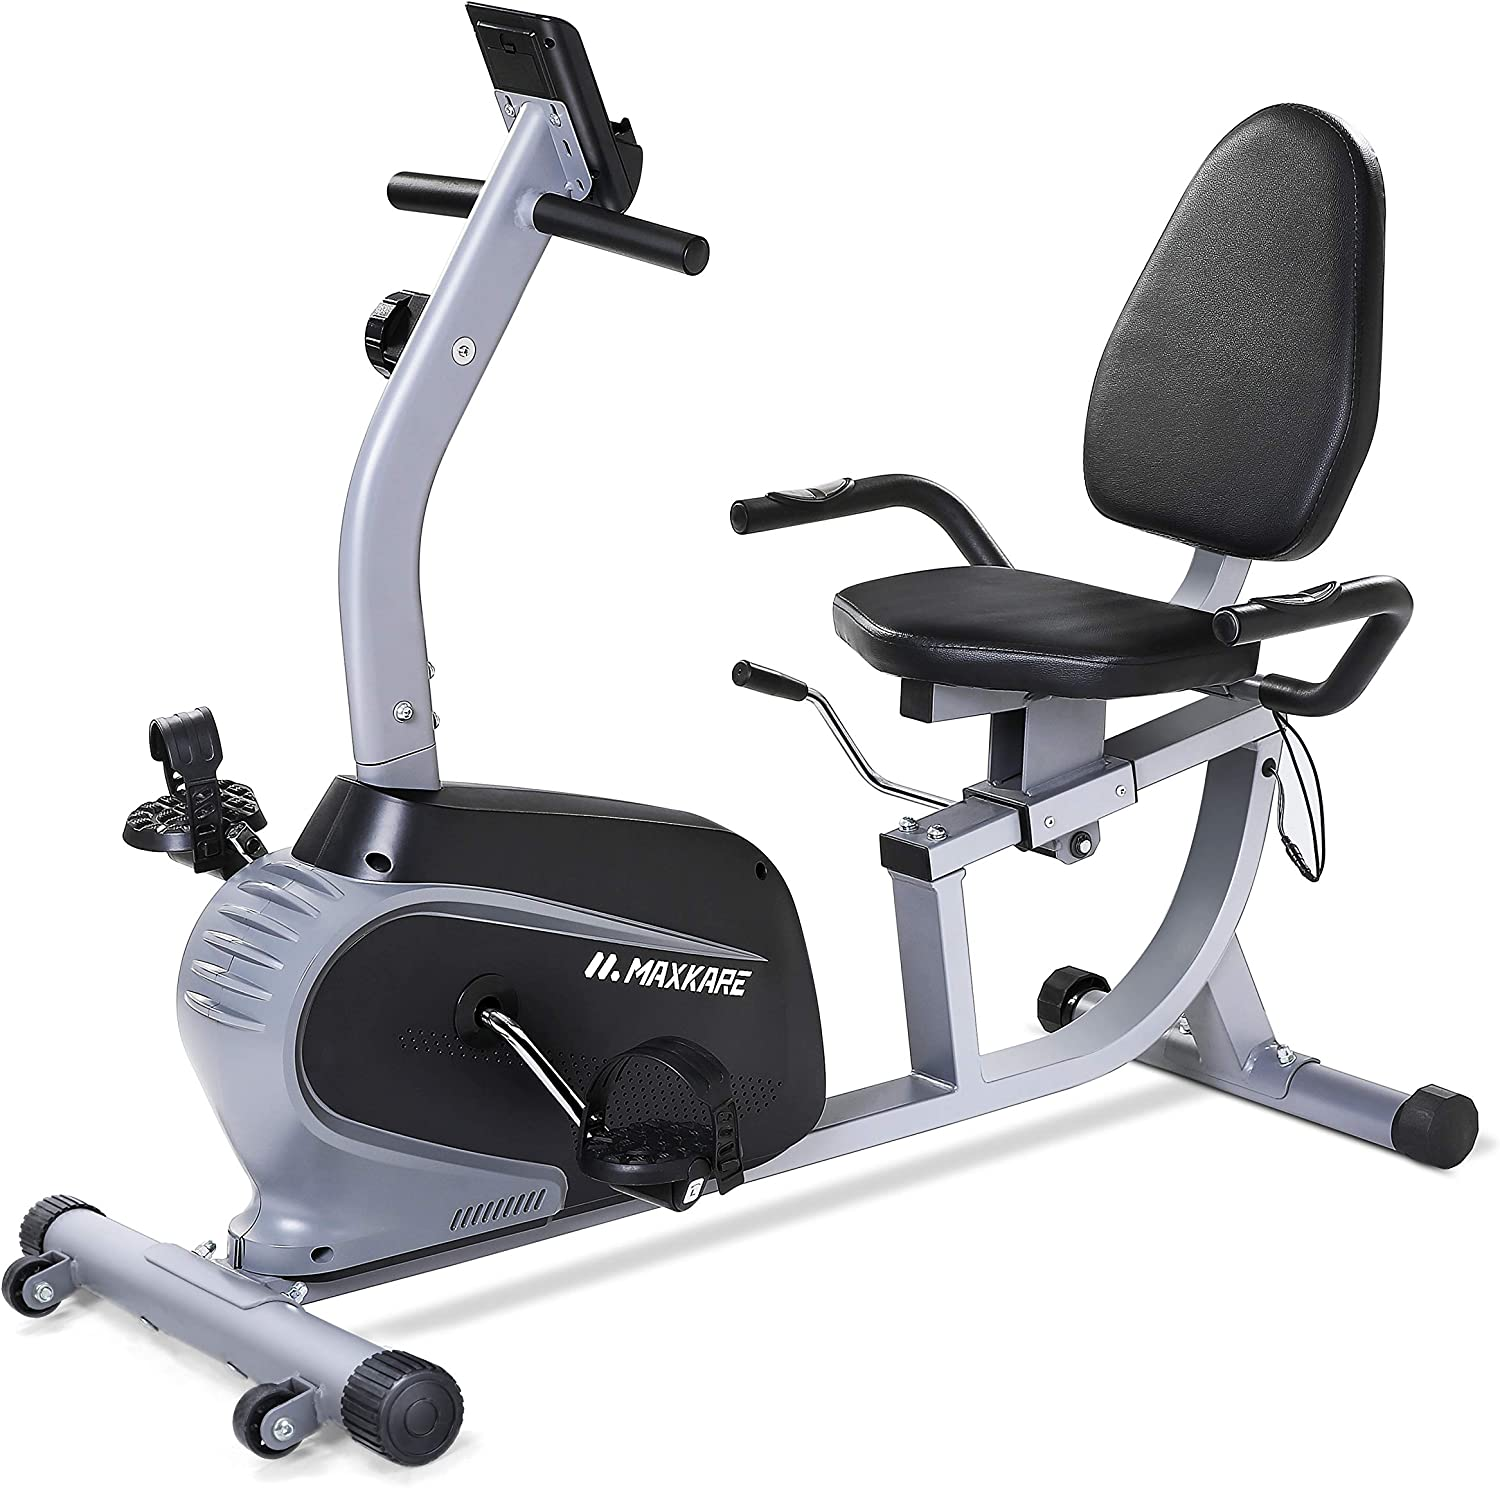 3. MaxKare Recumbent Exercise Bike